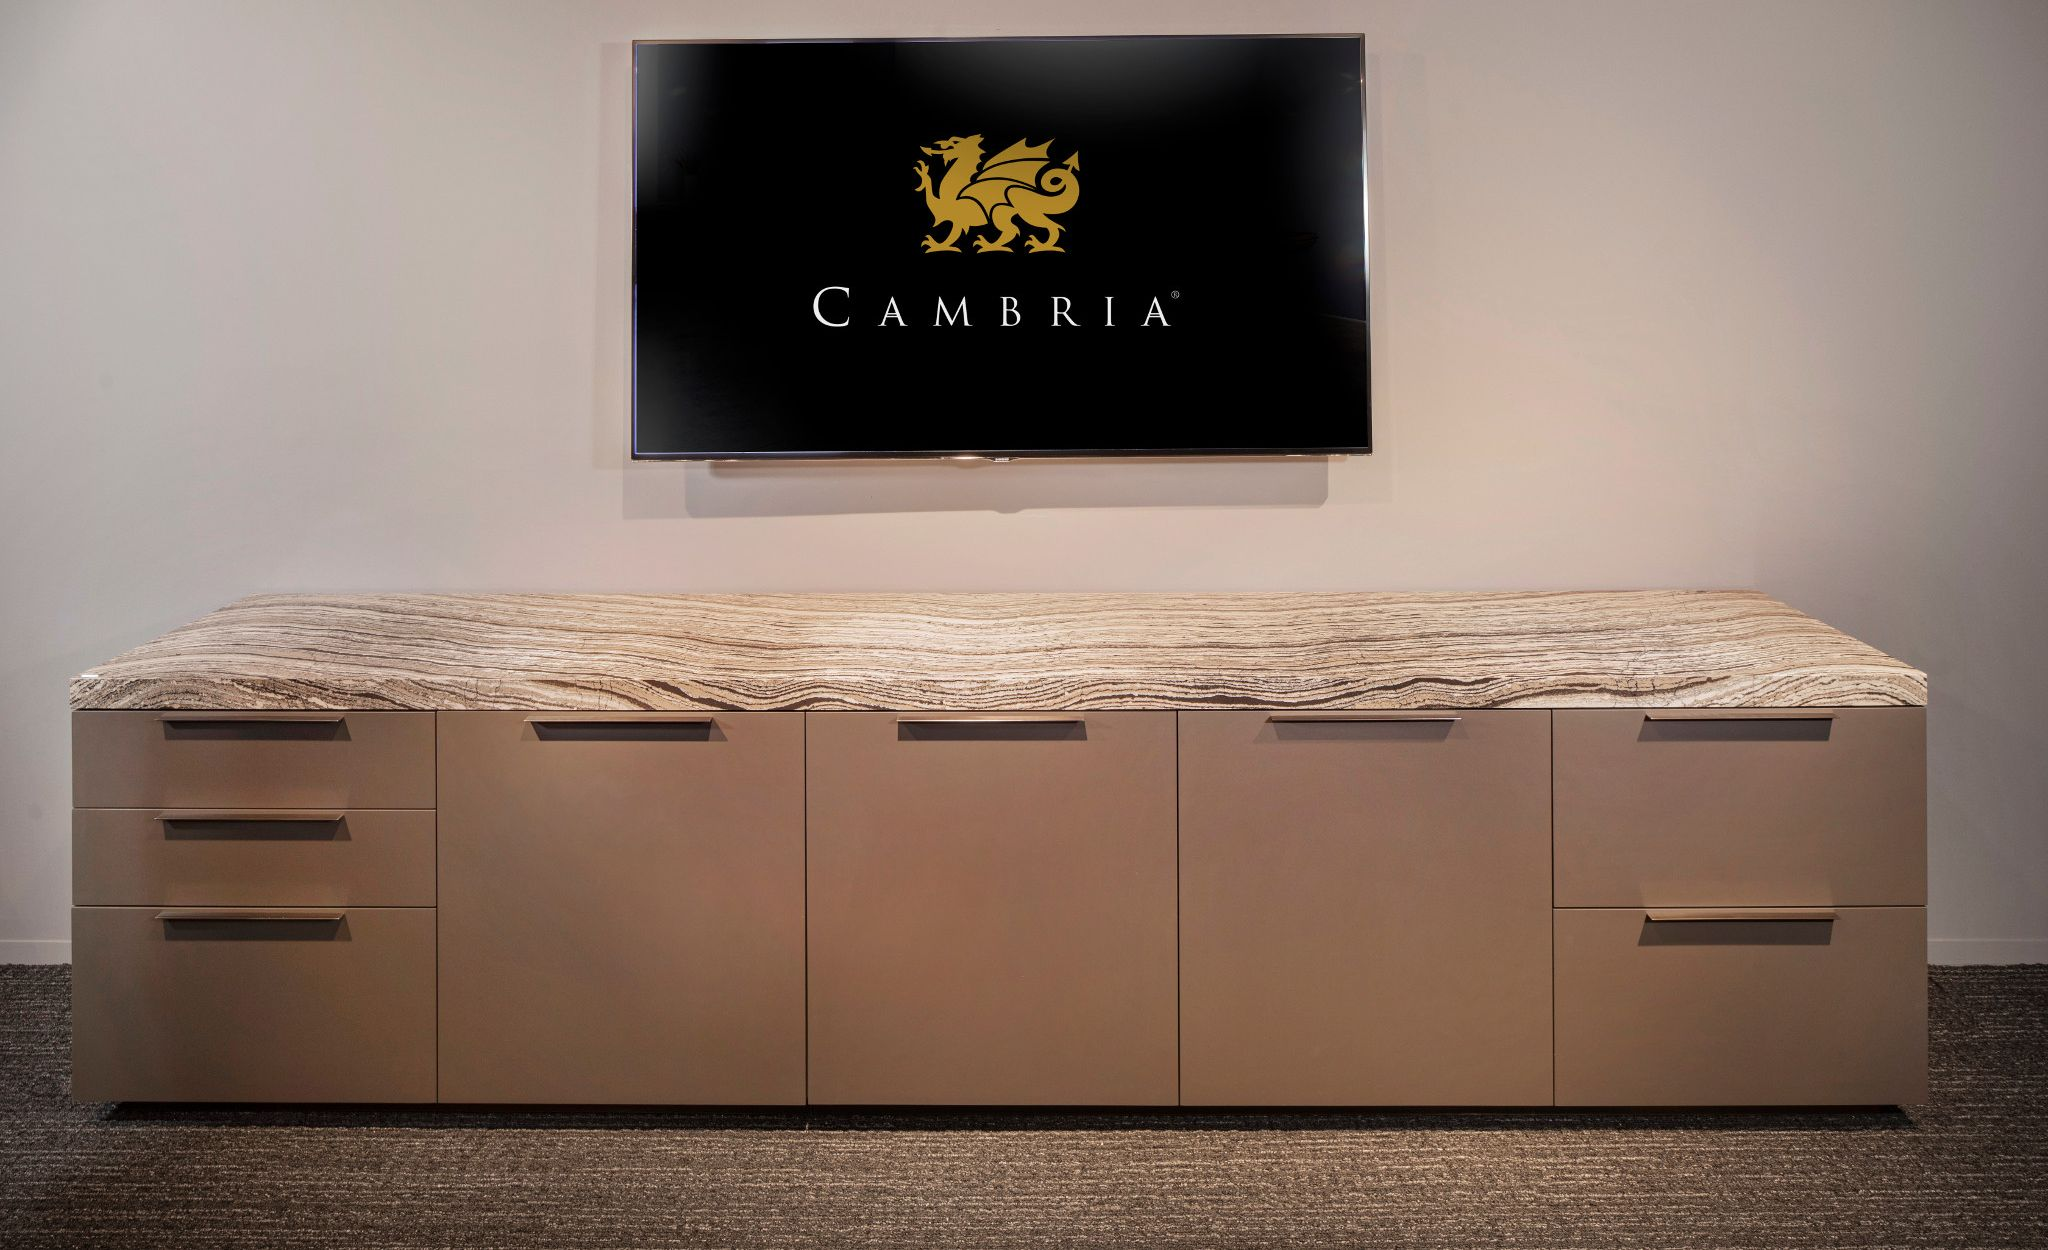 Pair Cambria Clairidge with wood cabinets for a perfectly neutral pair.